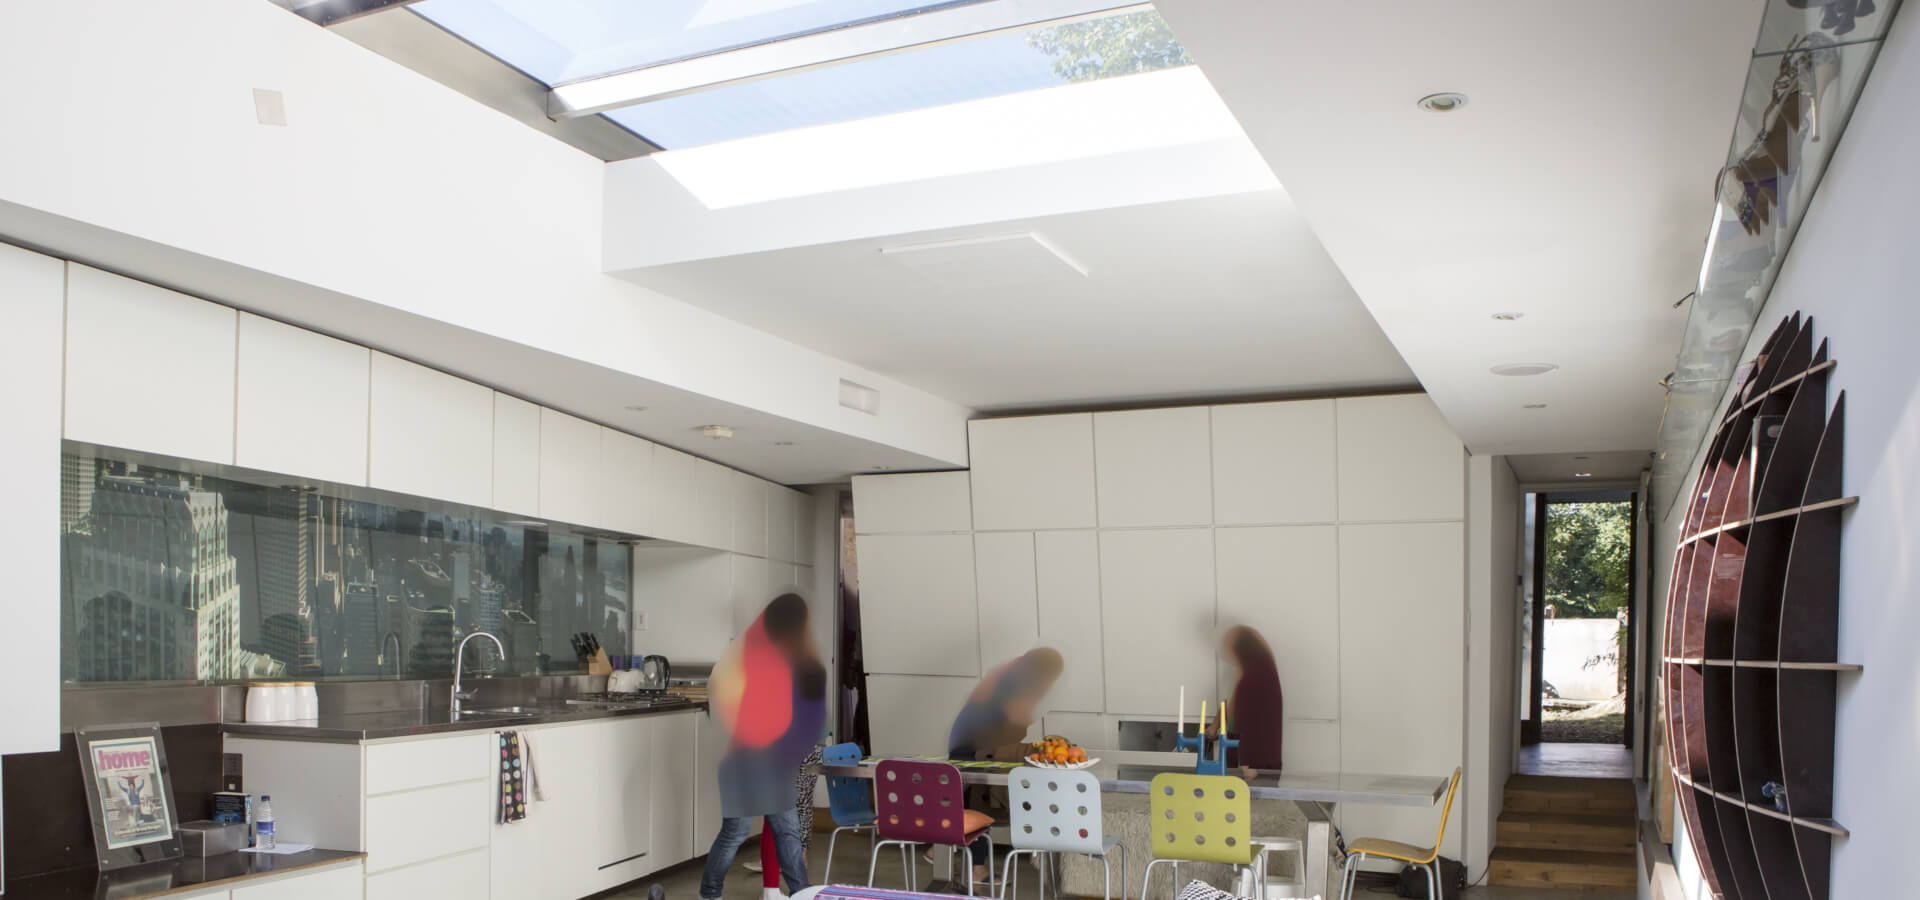 peckham house seen on channel 4 grand designs dvd with kevin mccloud, project of the experimental house built by monty ravenscroft with glass sliding roof